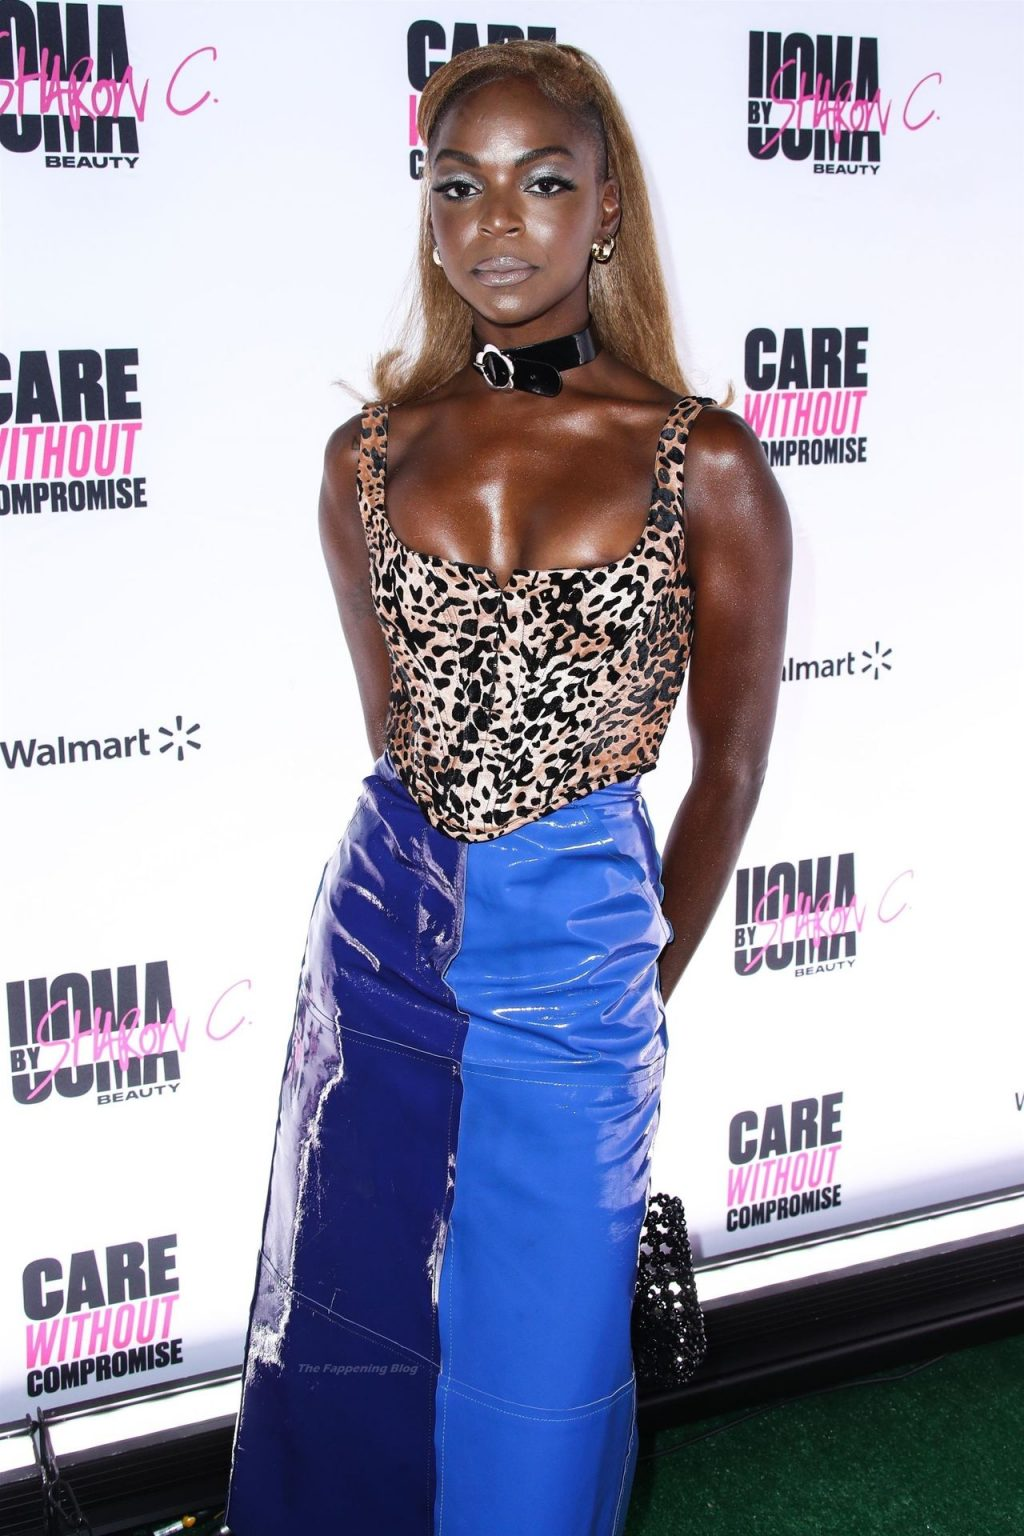 Samantha Marie Ware Flashes Her Areola at the Event (6 Photos)